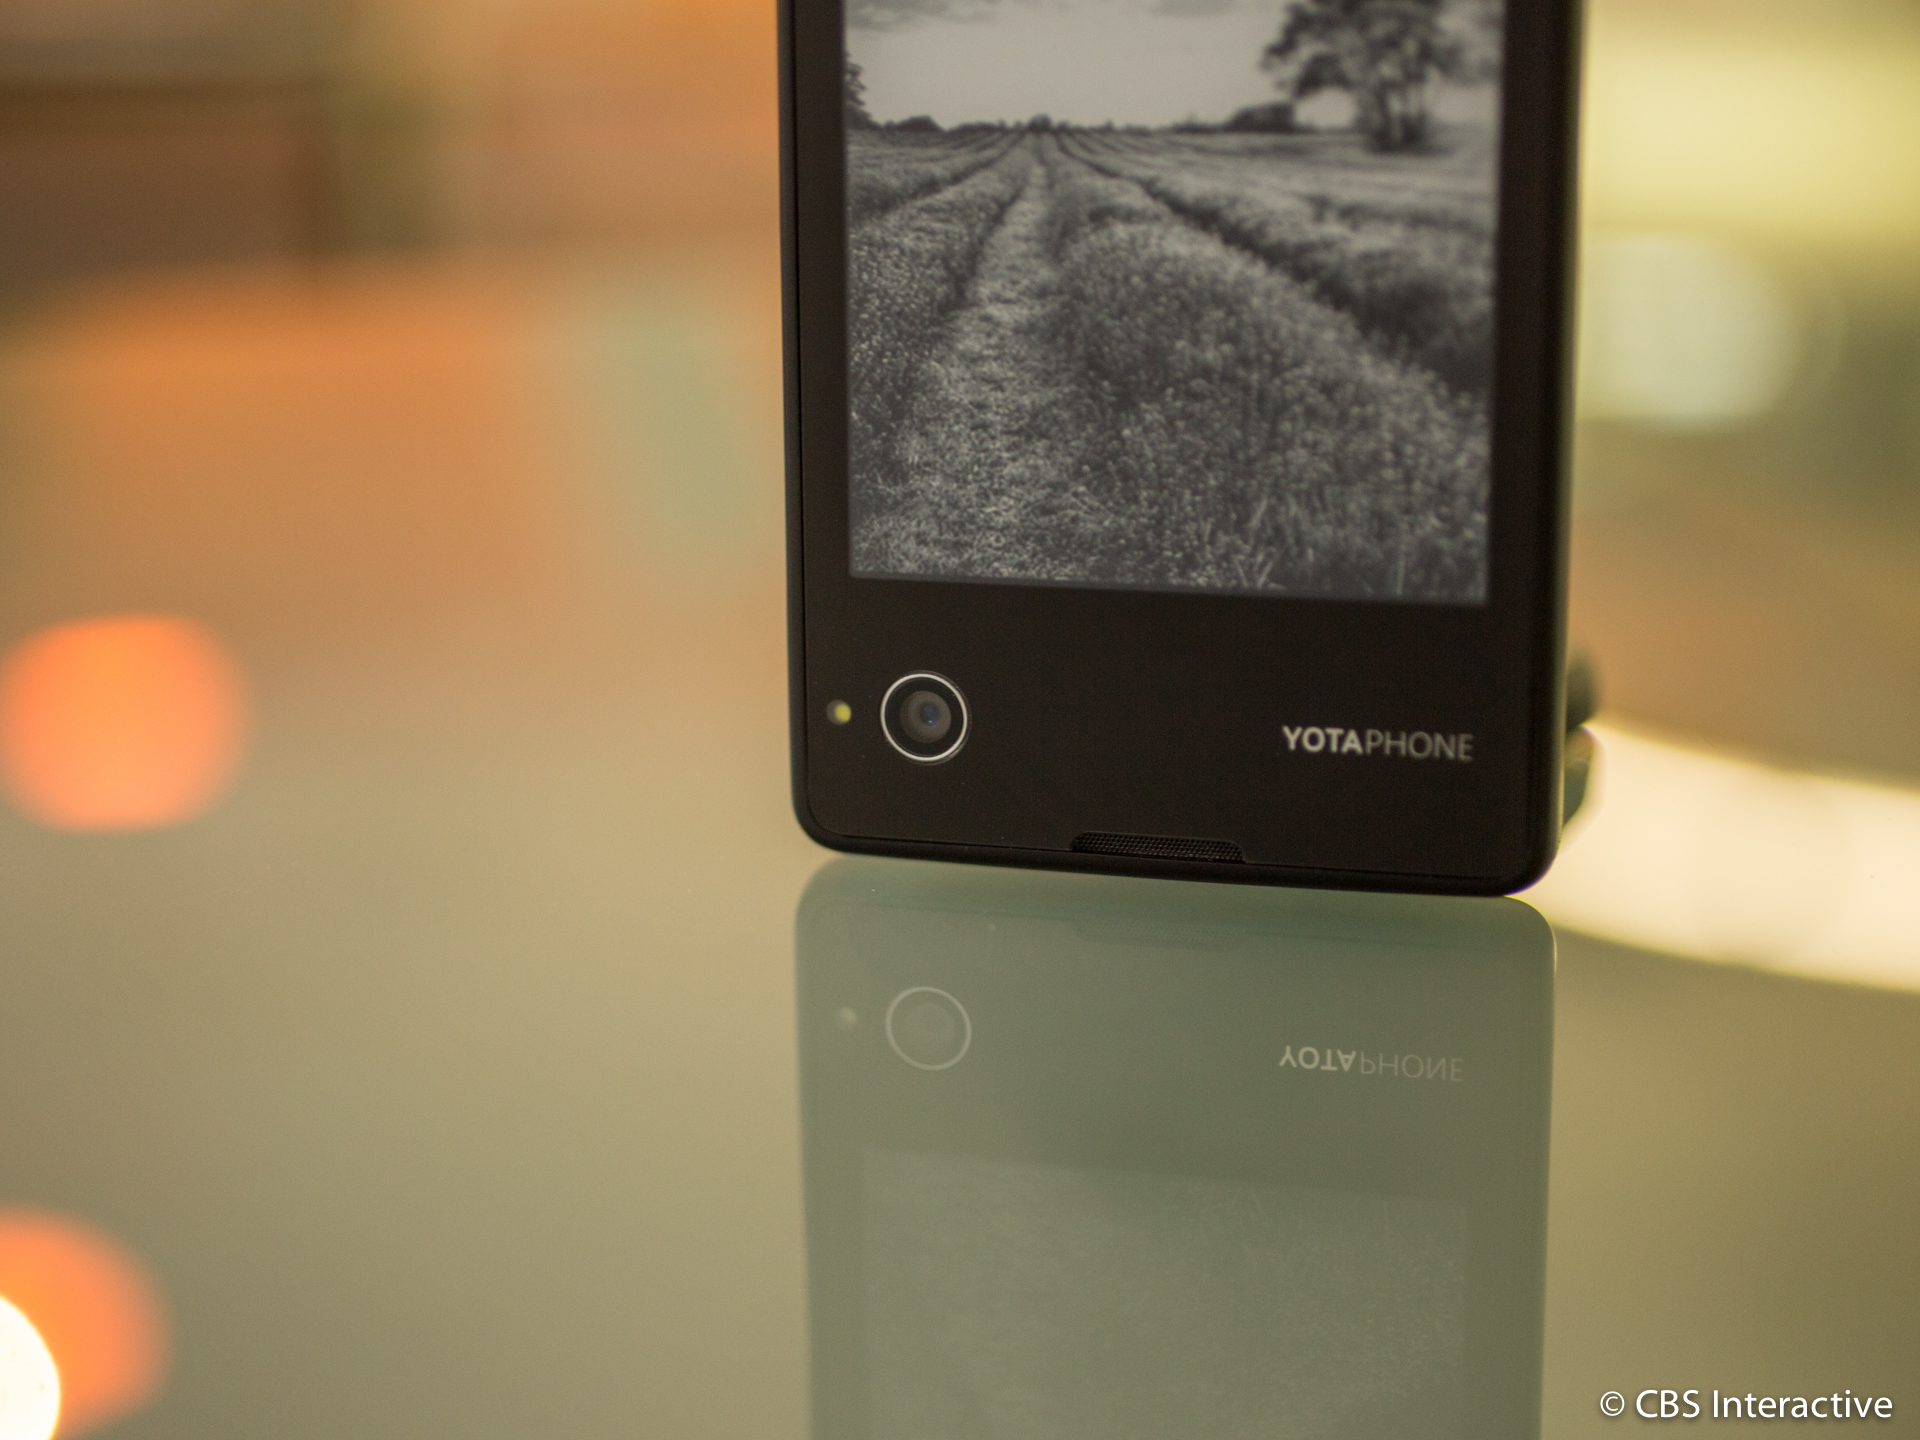 yotaphone-review-new-7.jpg